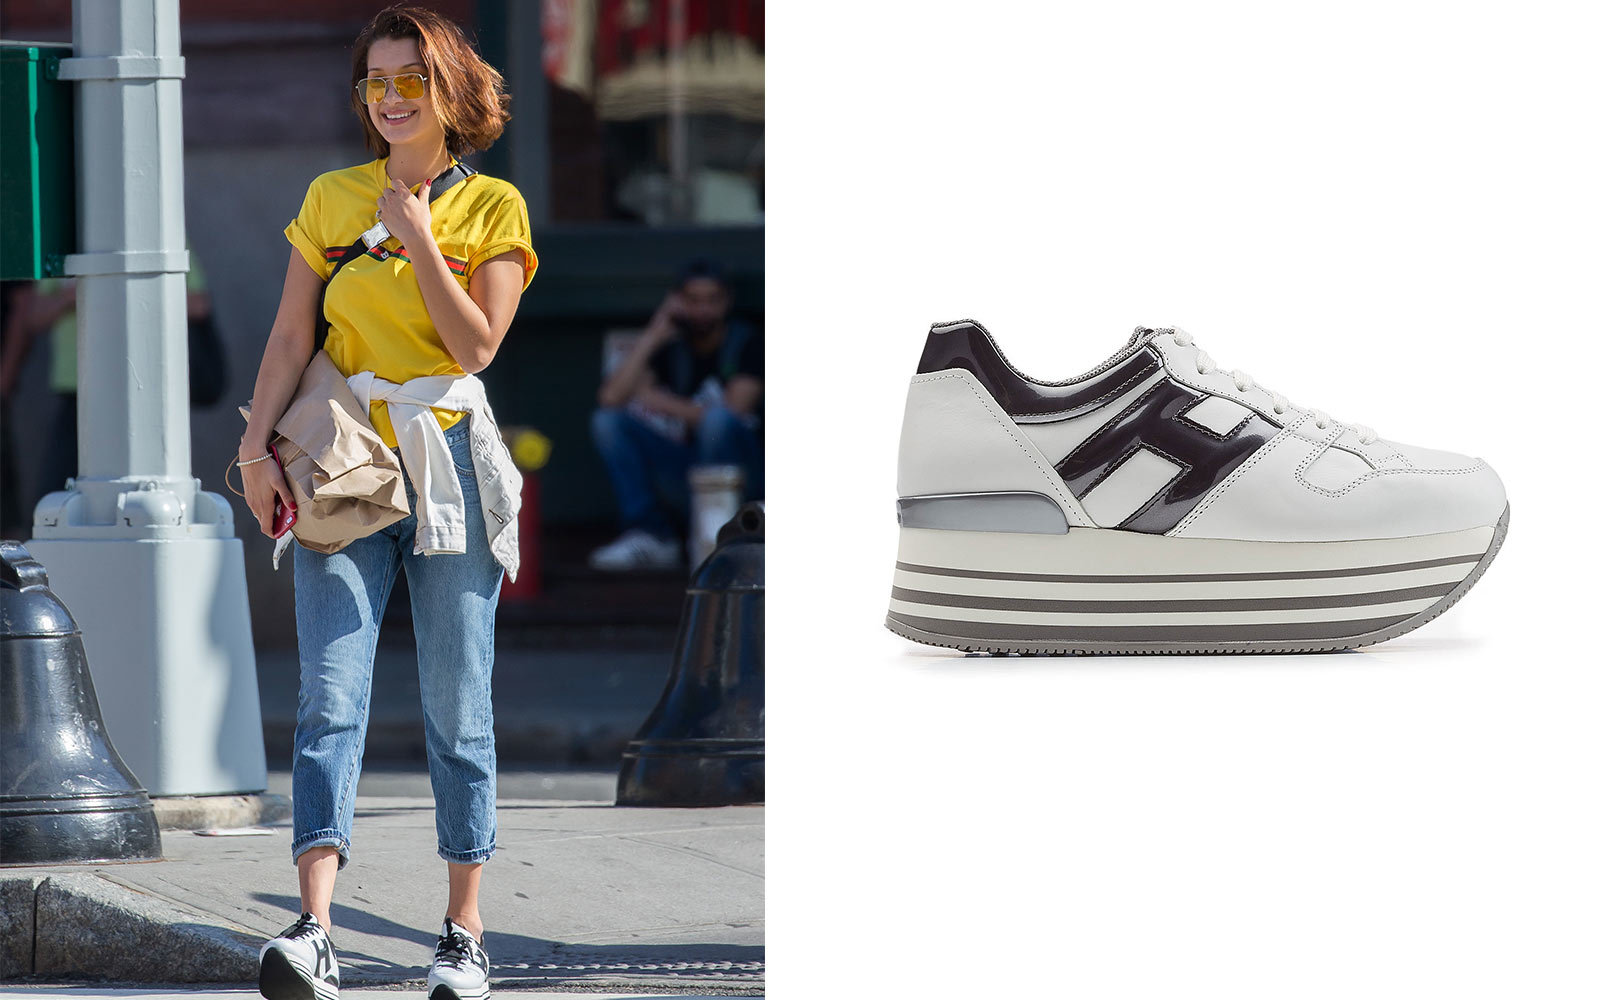 huge selection of 11315 e5f9a Bella Hadid in Hogan Leather sneaker